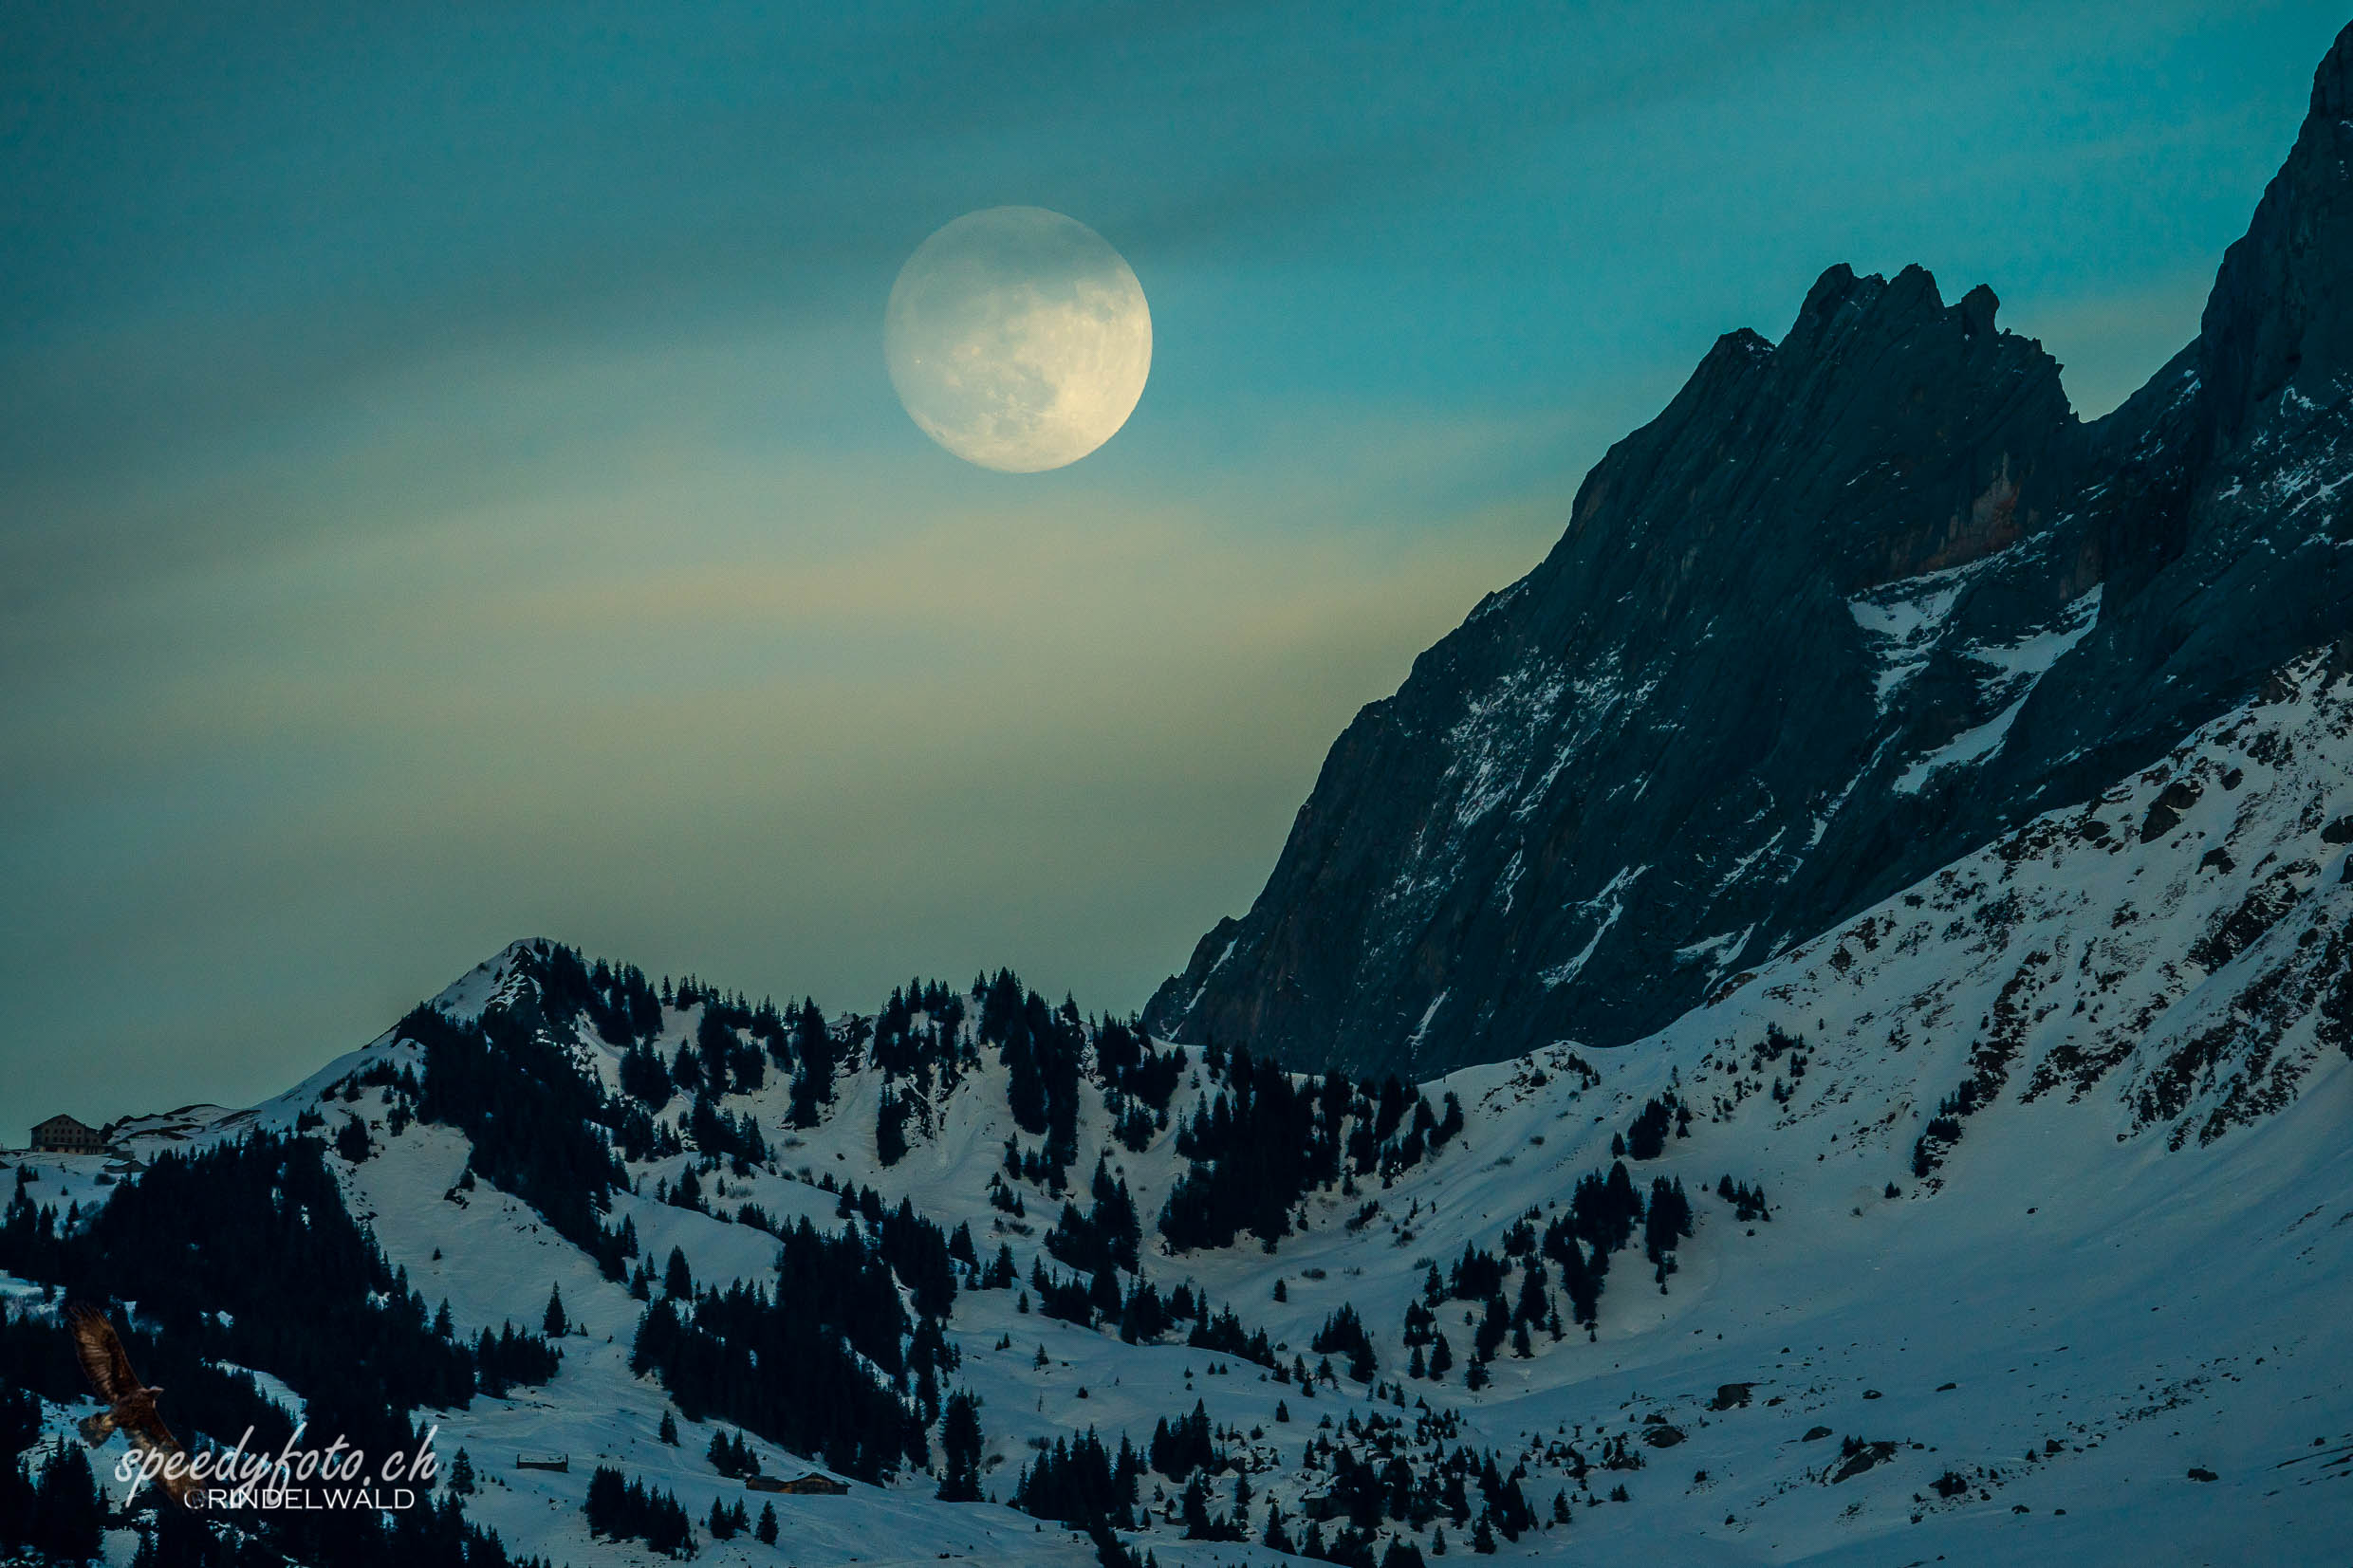 Mysty Moonrise - Gr. Scheidegg